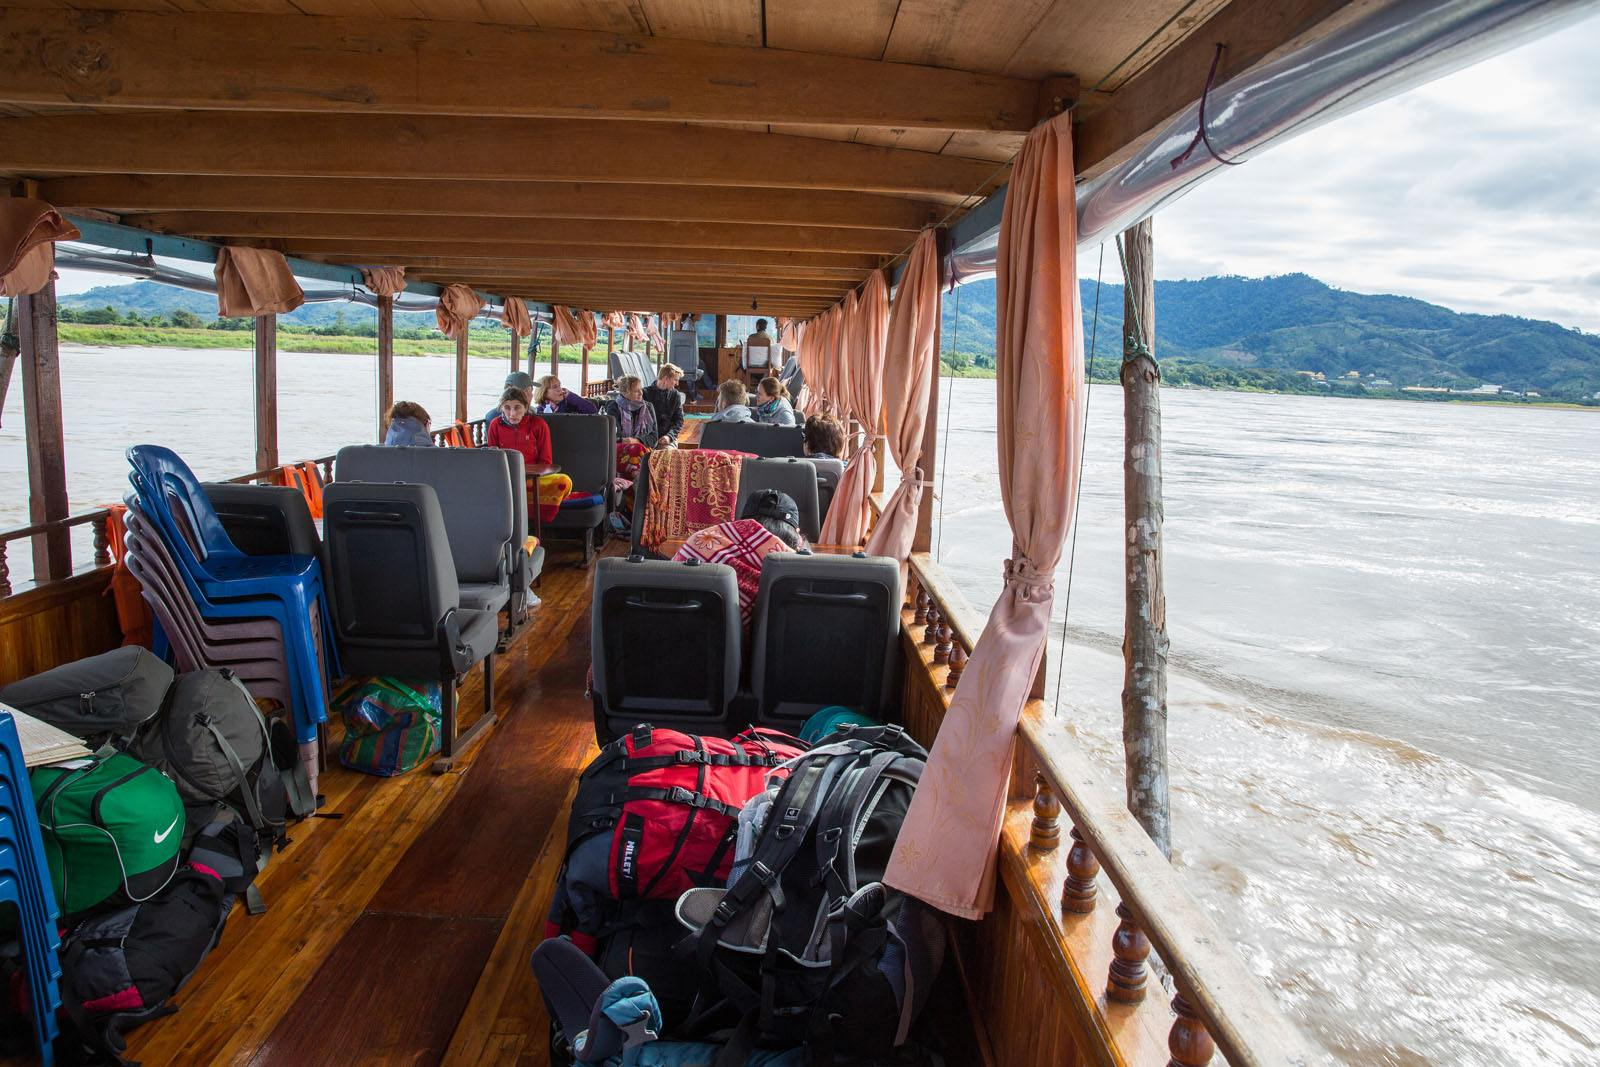 Taking the Slow Boat From Thailand to Laos